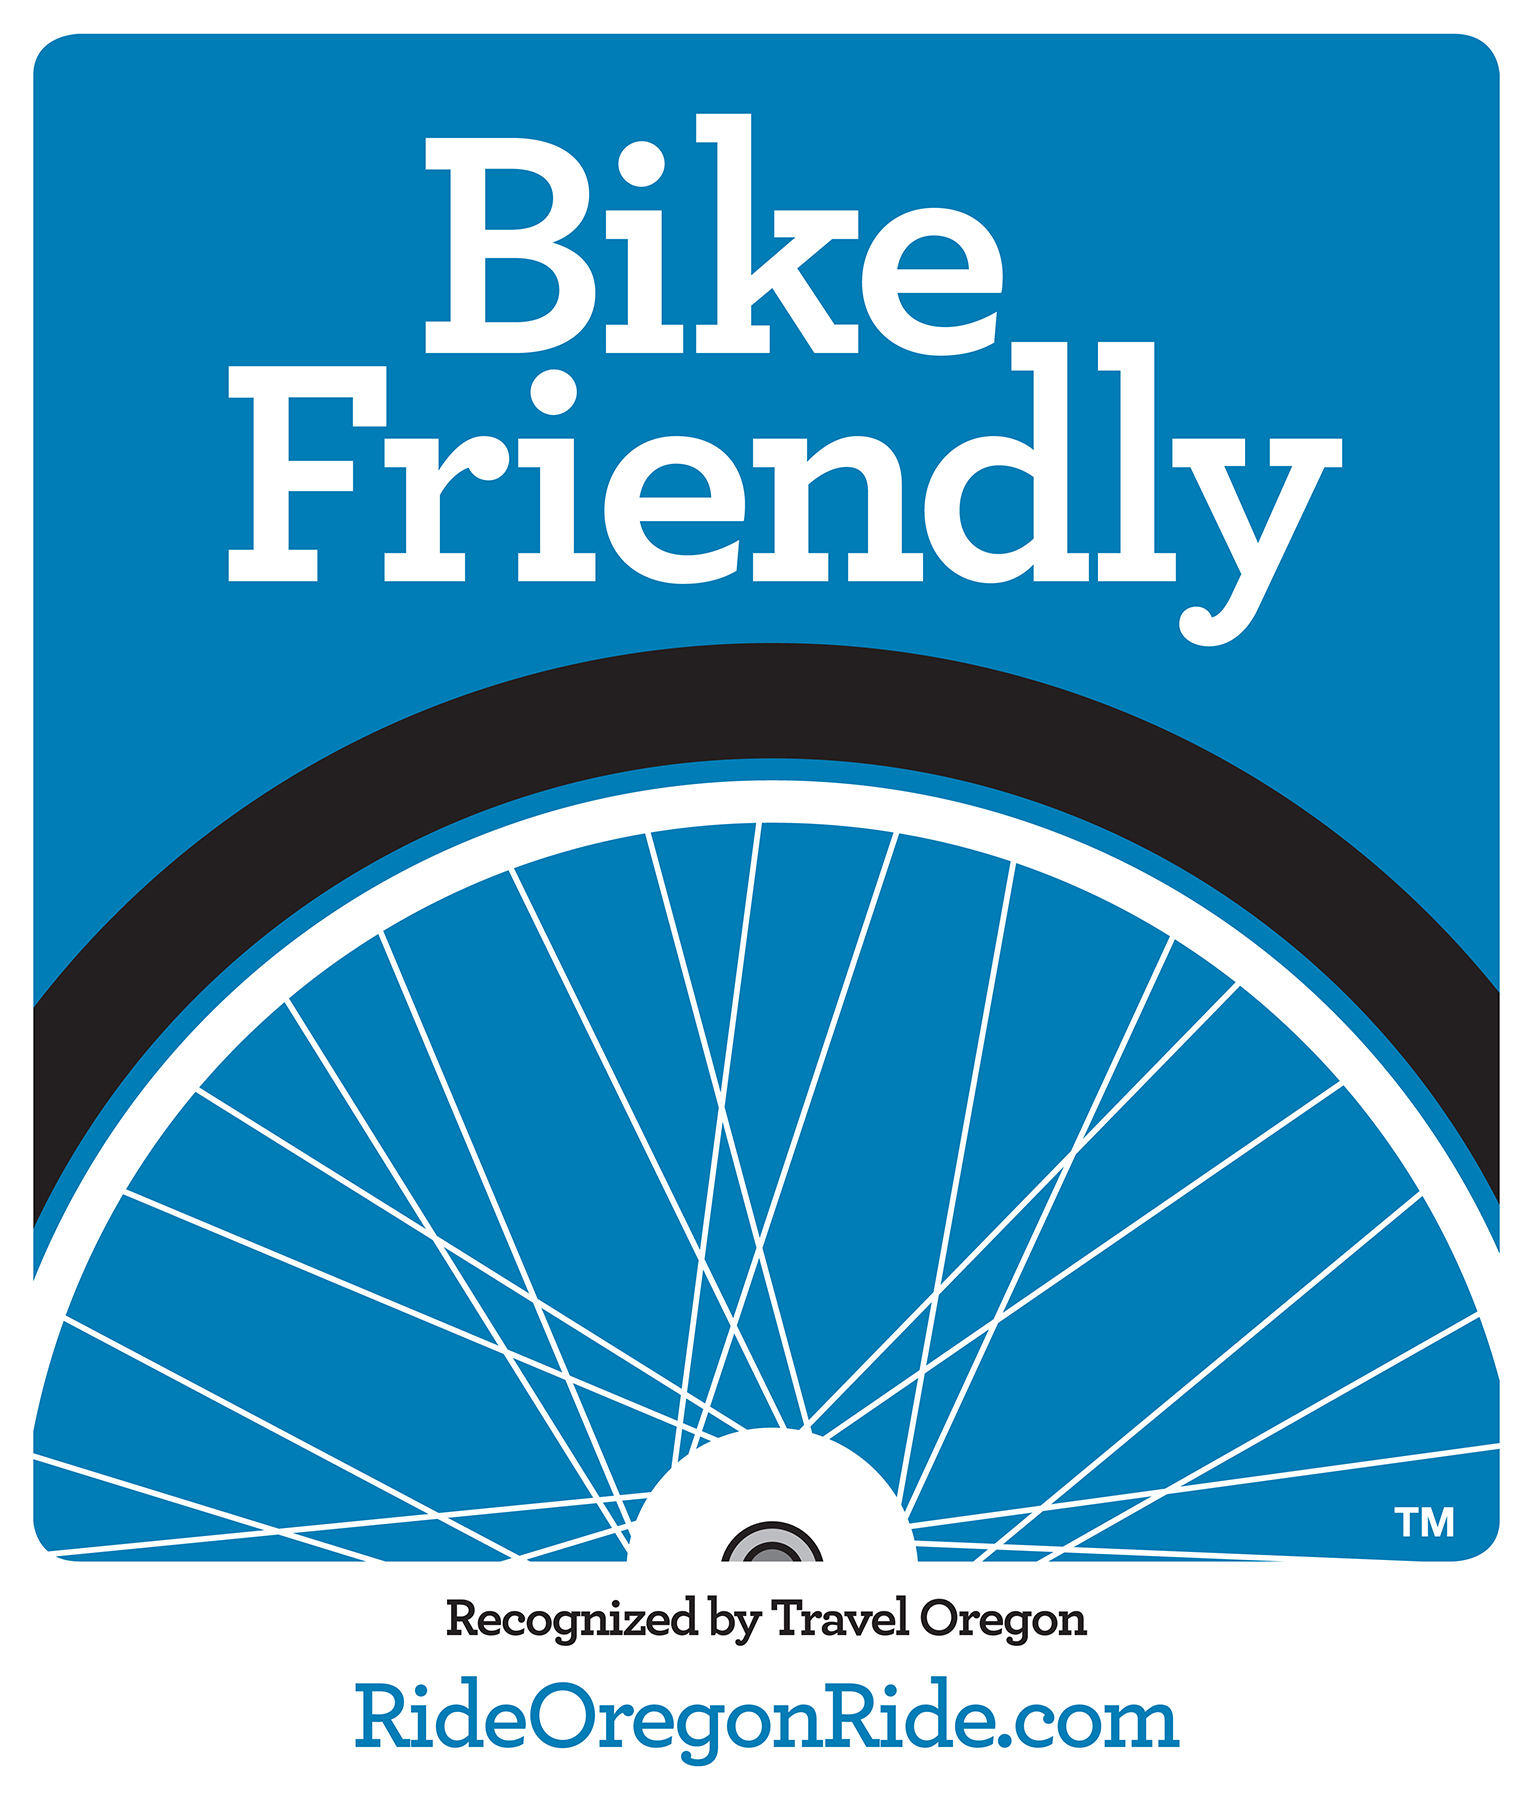 Bike Friendly Business Logo NO ICONS (jpeg)